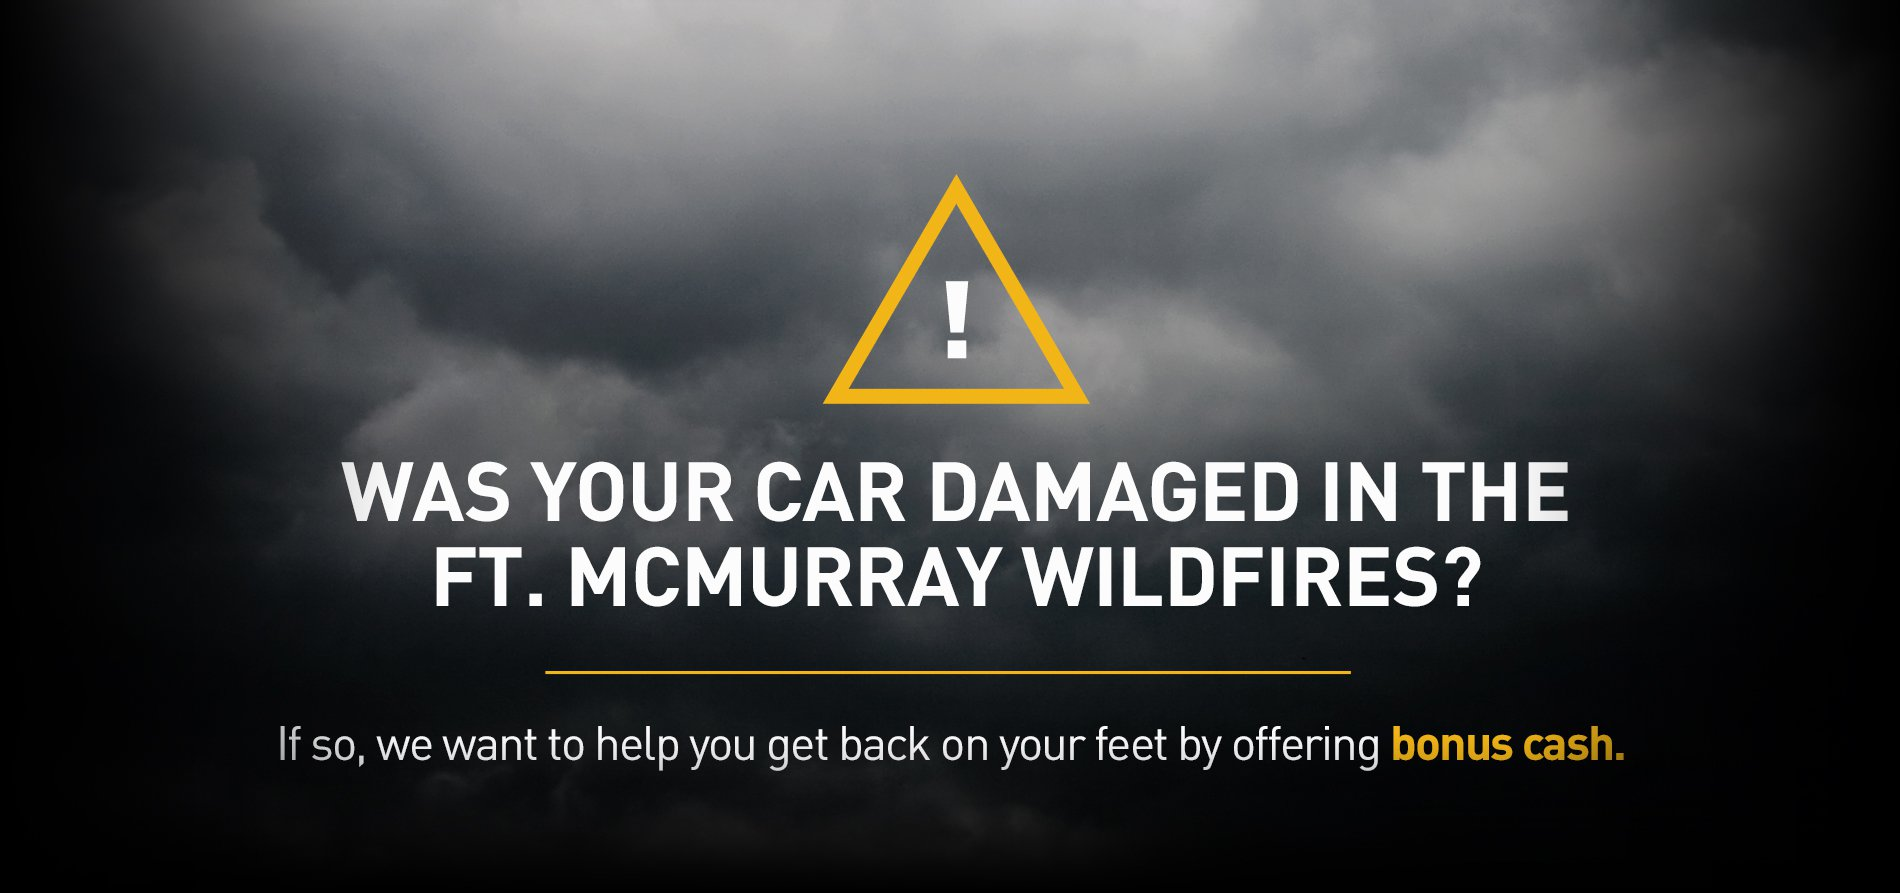 ft-mcmurray